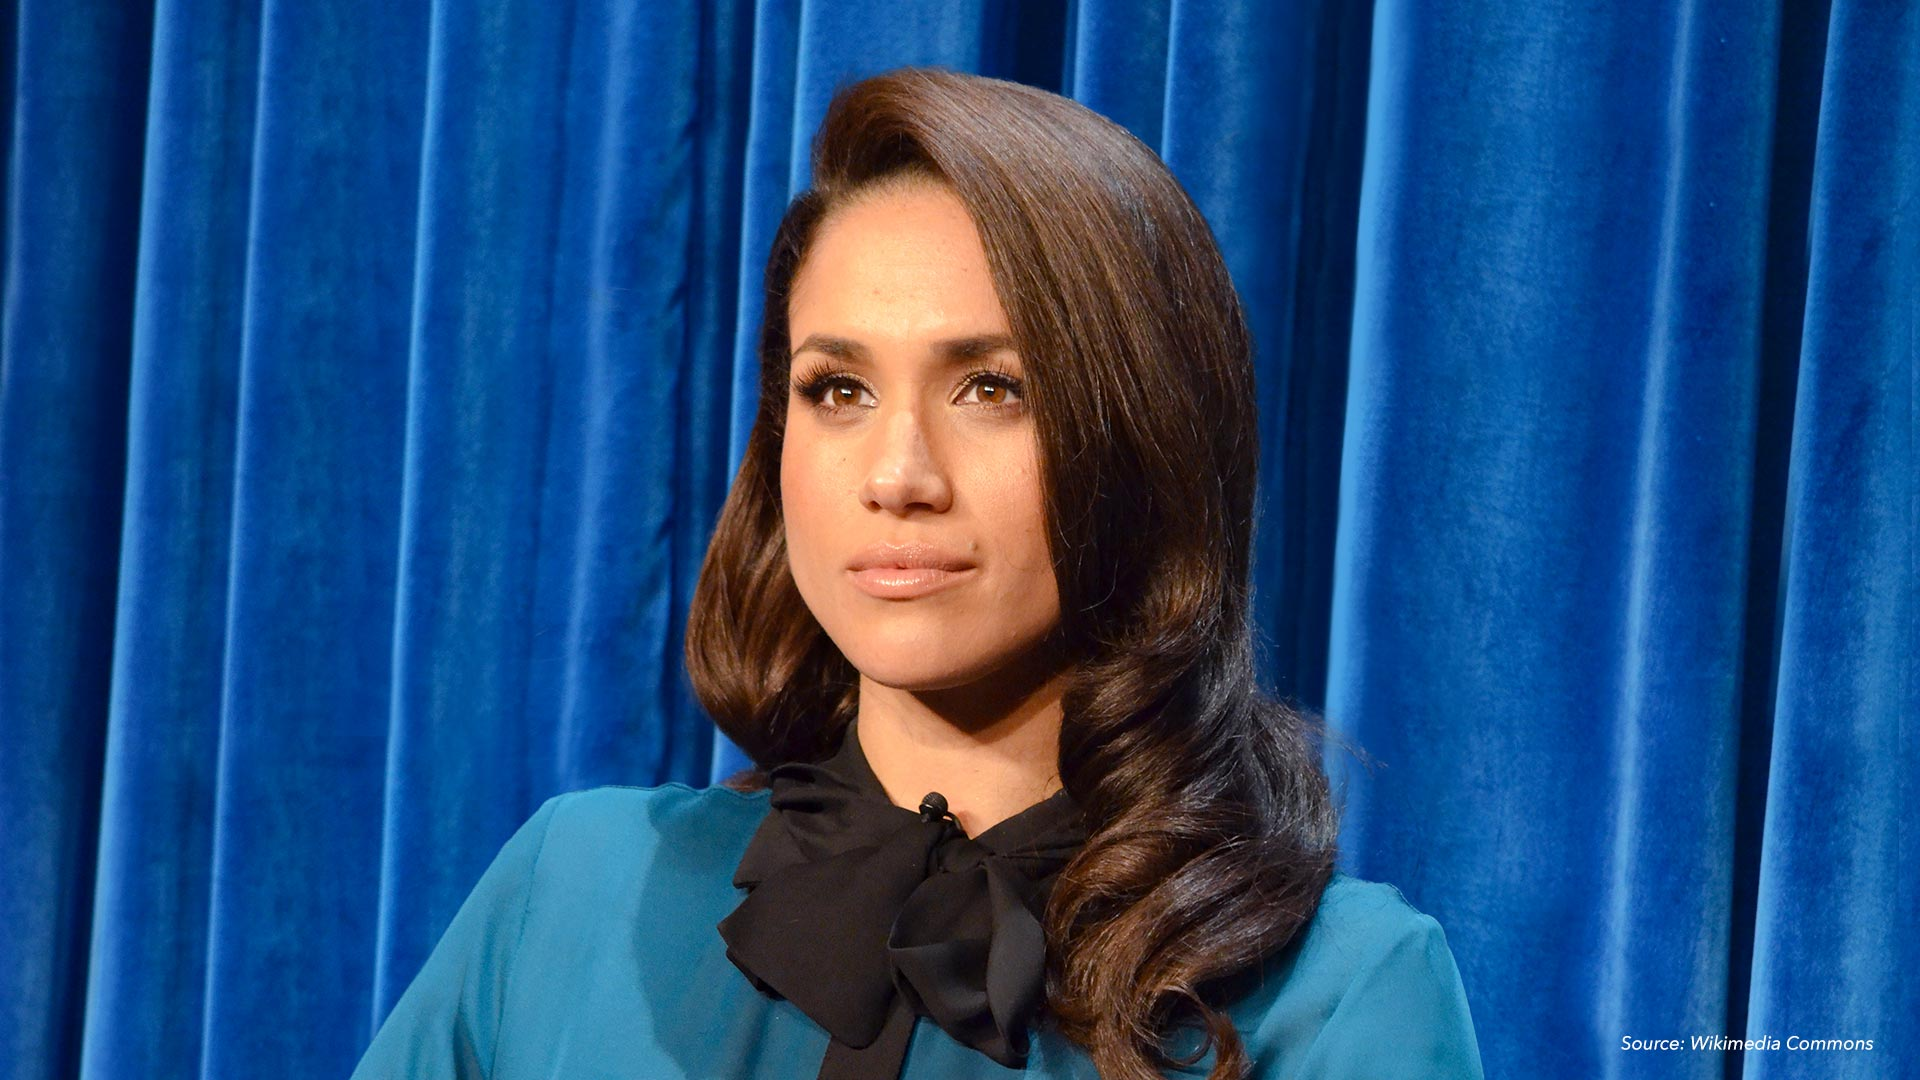 Meghan Markle Brings Awareness to Mental Health Struggles During Pregnancy